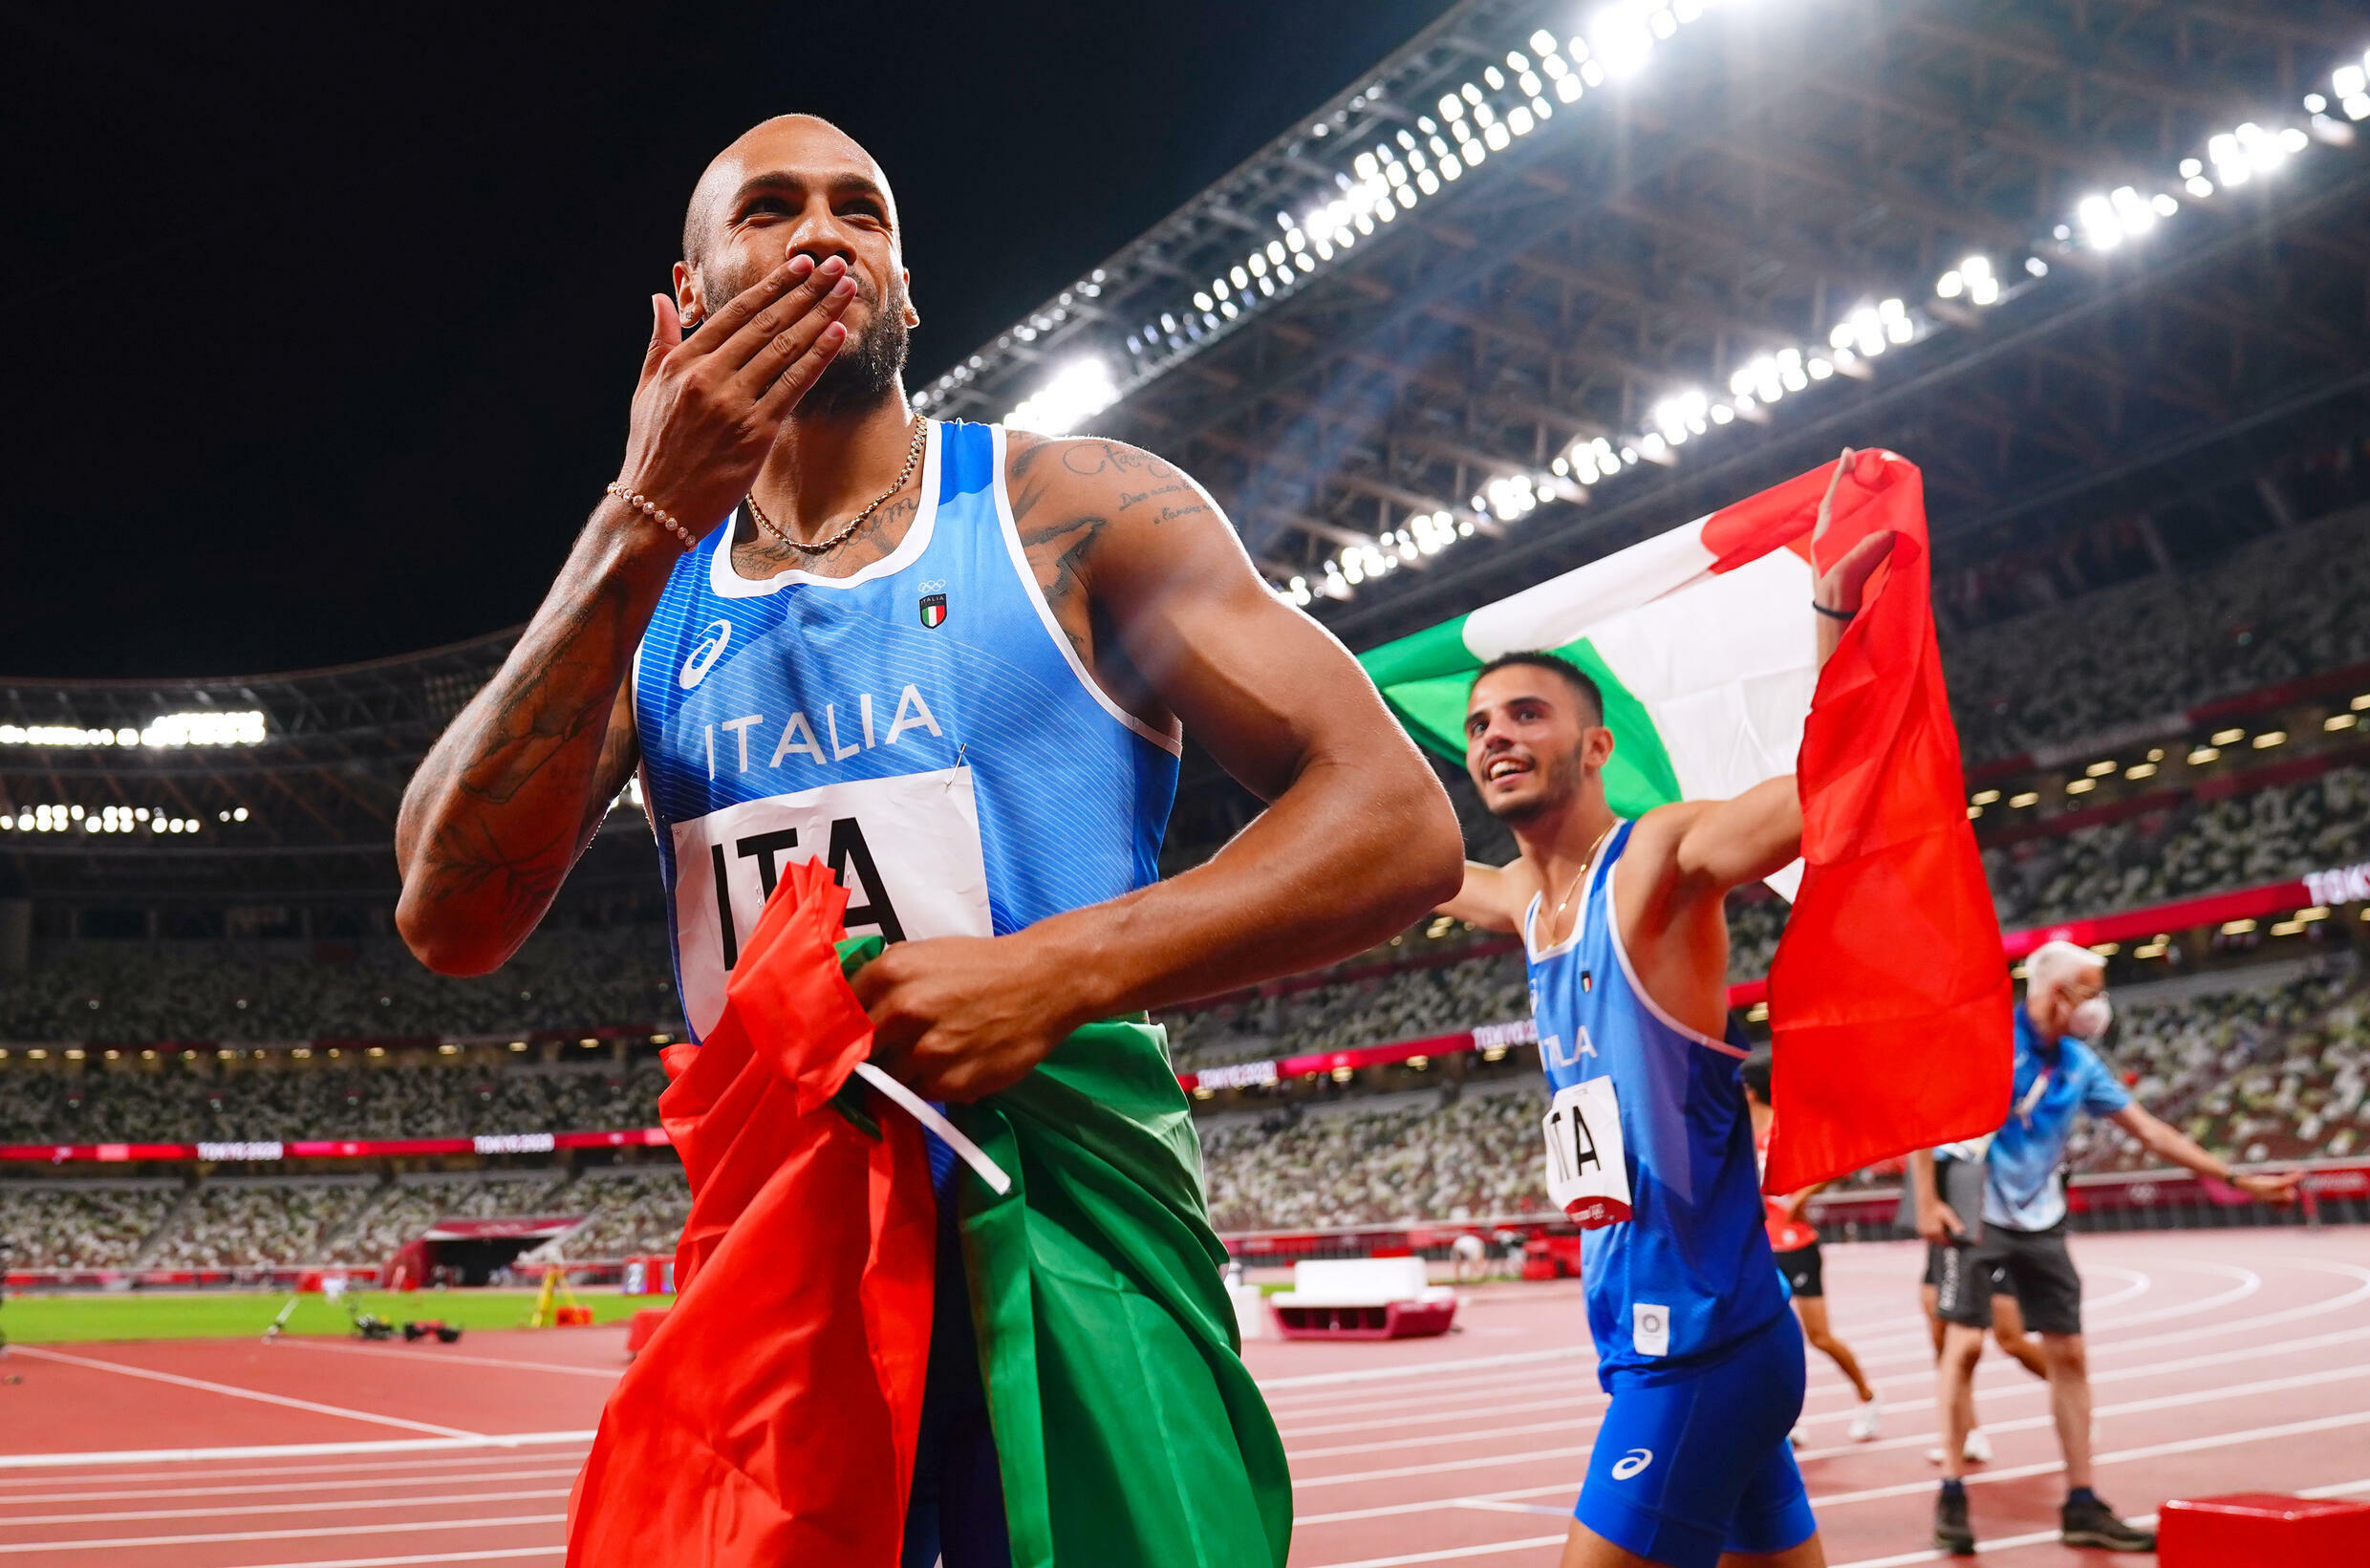 Italy's Lamont Marcell Jacobs also won the men's 4x100m relay at the Tokyo Games